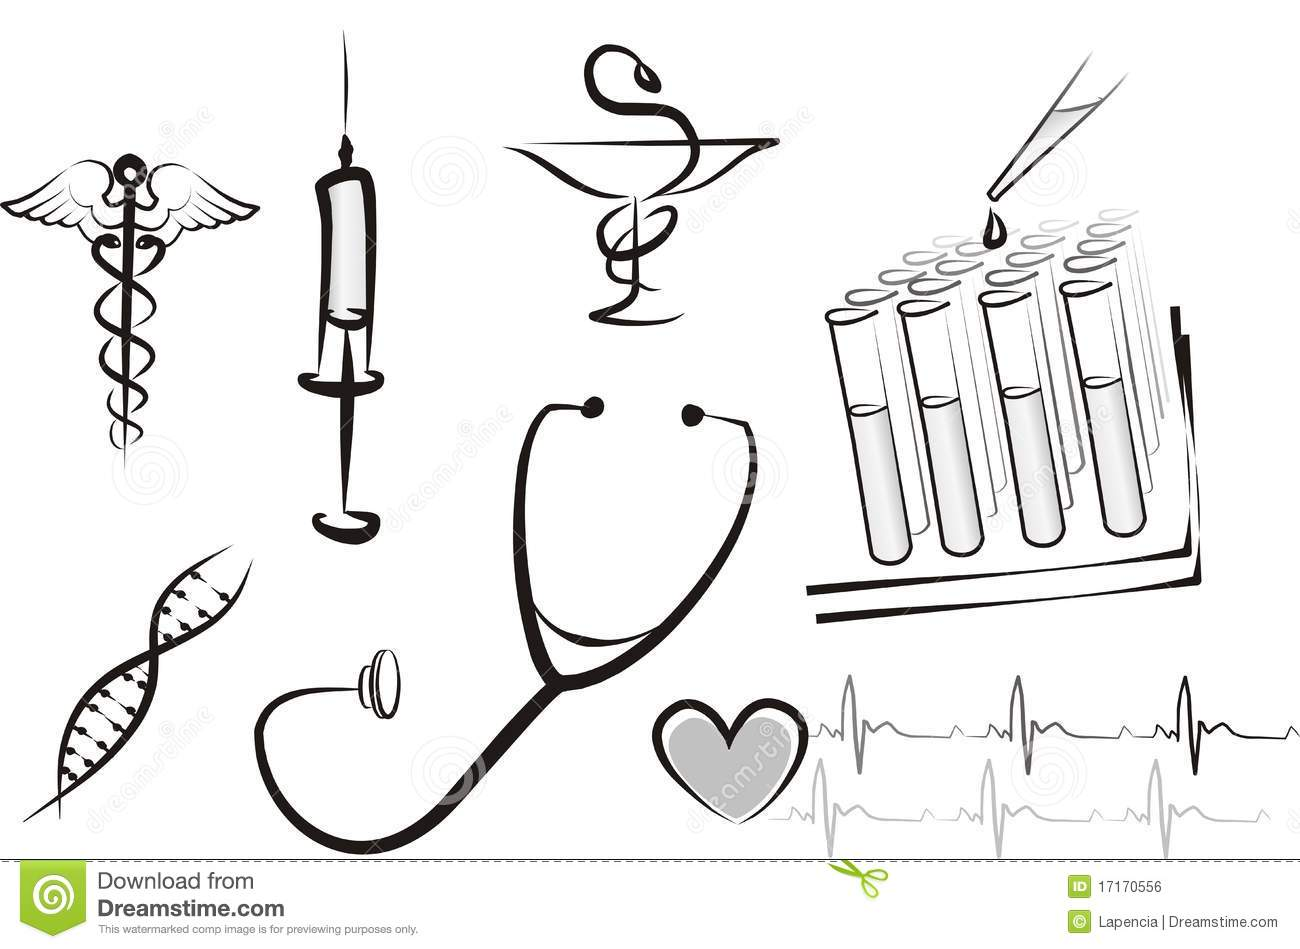 Stethoscope And Ecg Concept Of Emergency Medical Services